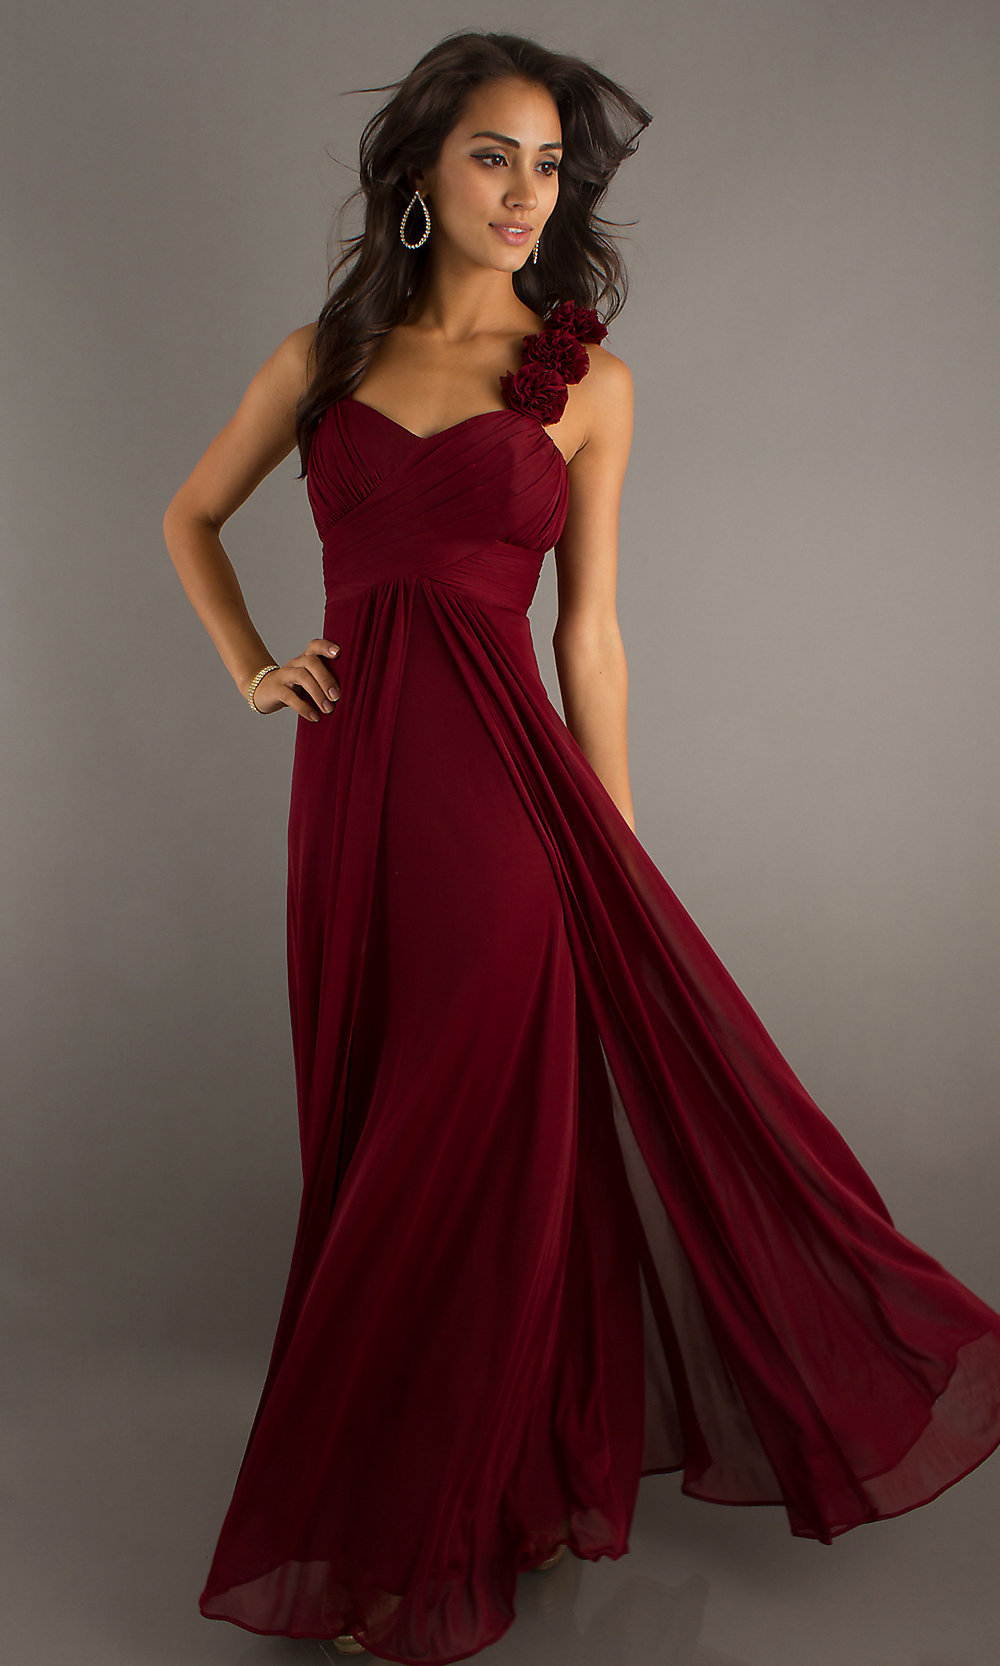 Sleeveless Full-Length Sweetheart Dress - PromGirl